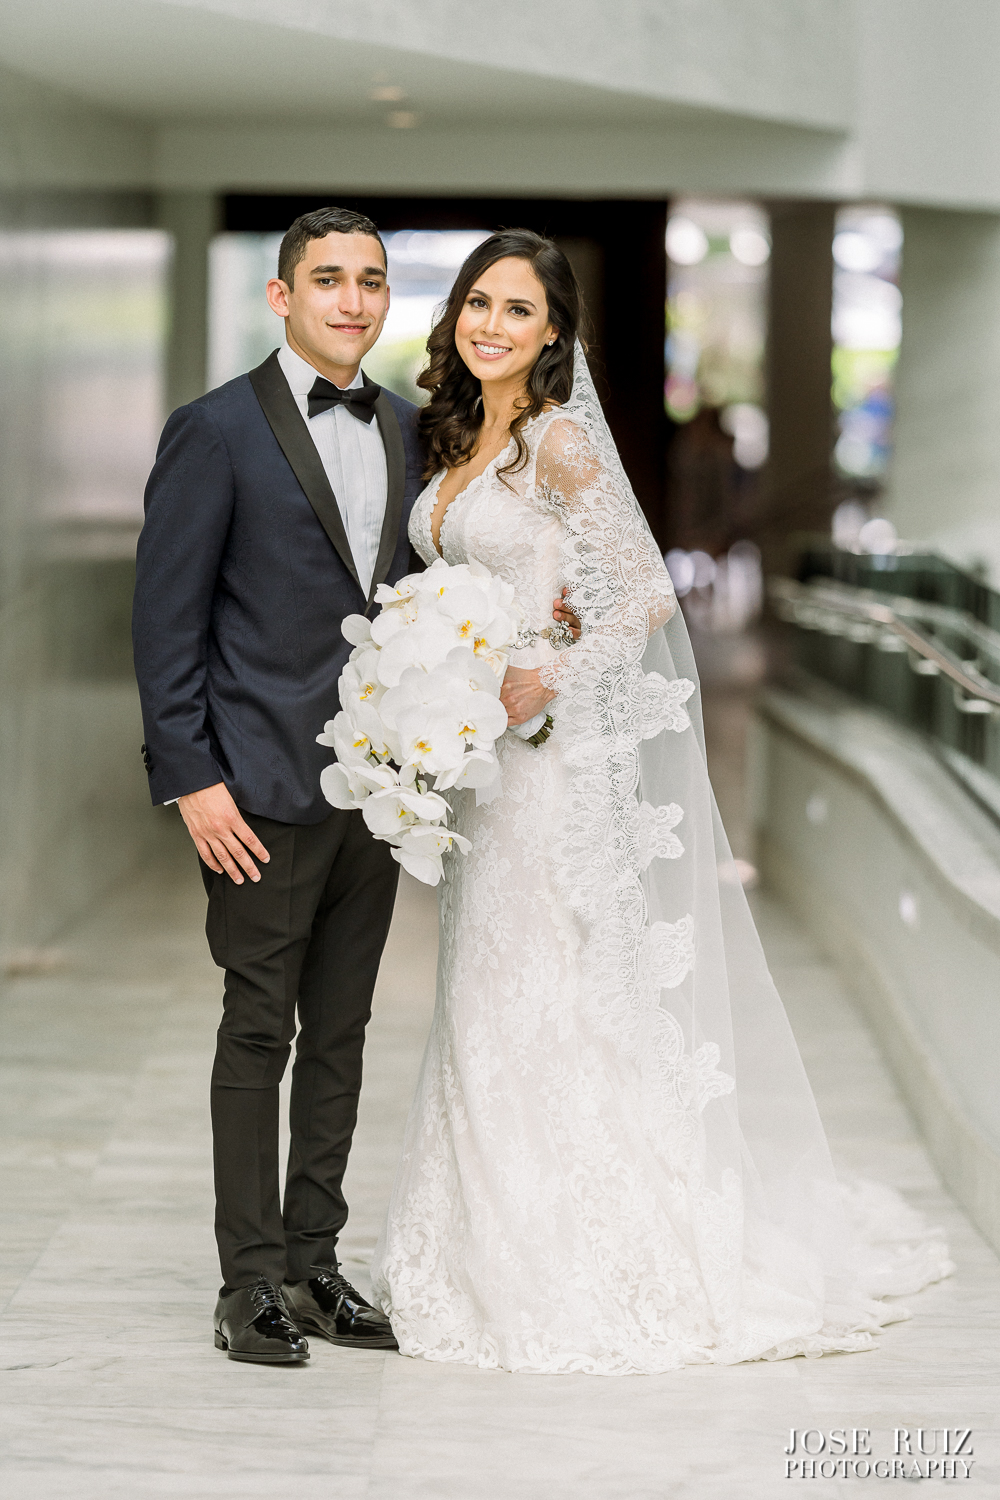 Jose Ruiz Photography- Veronica & Ivan-0095.jpg